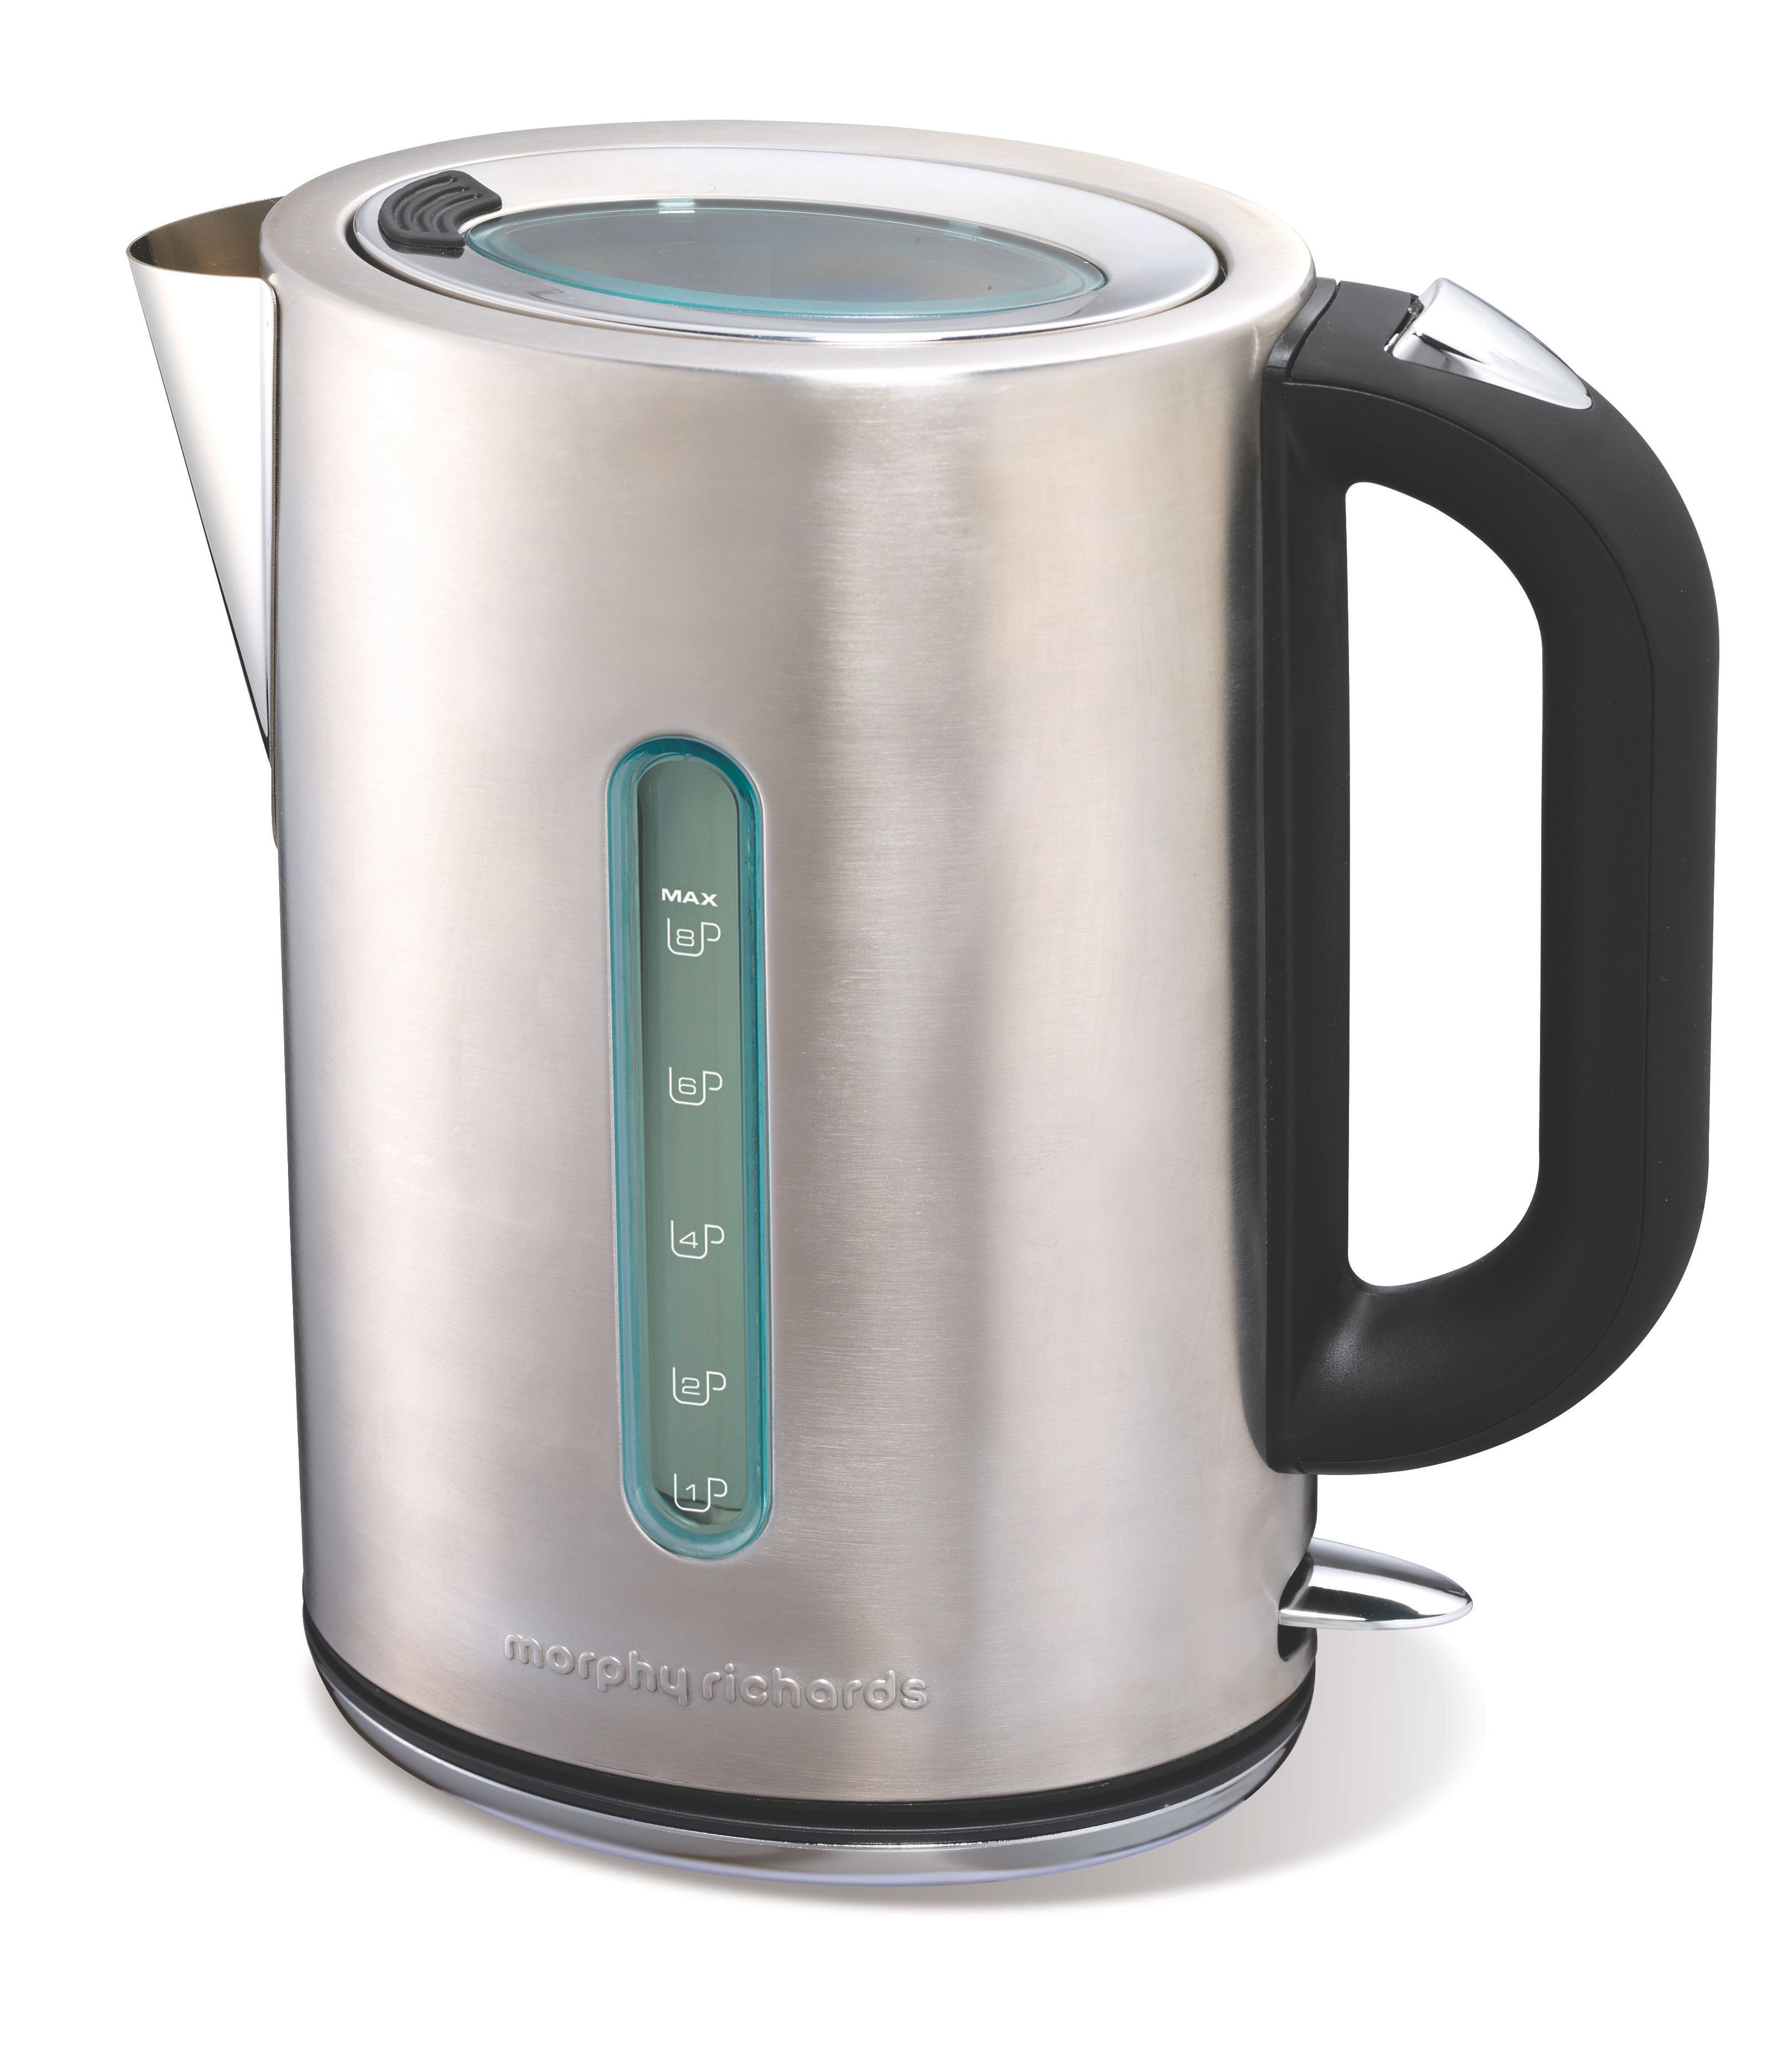 Elipta jug kettle brushed stainless steel